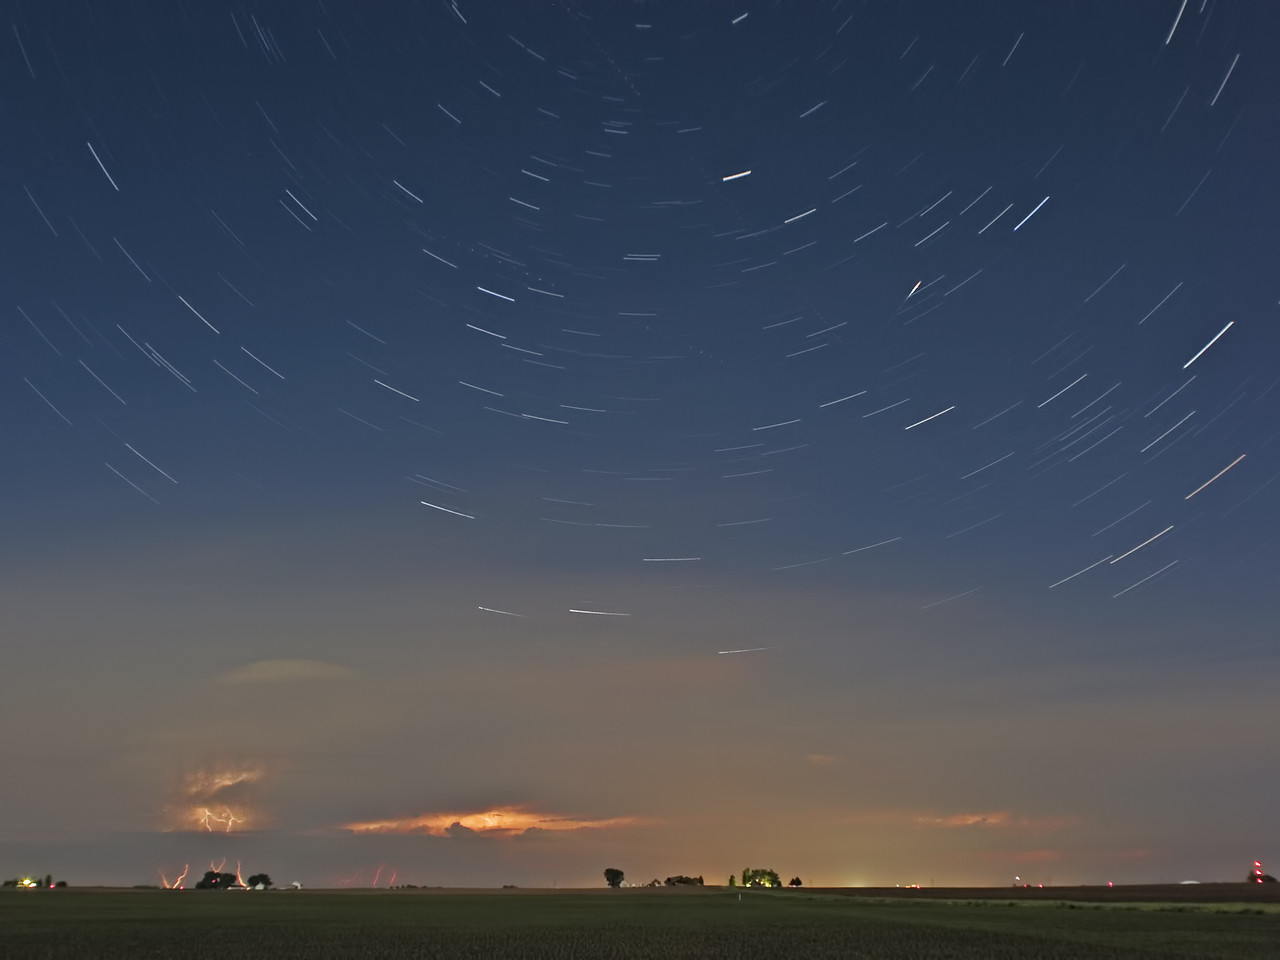 May 3 - Image Stack of Storms Over Northern Illinois